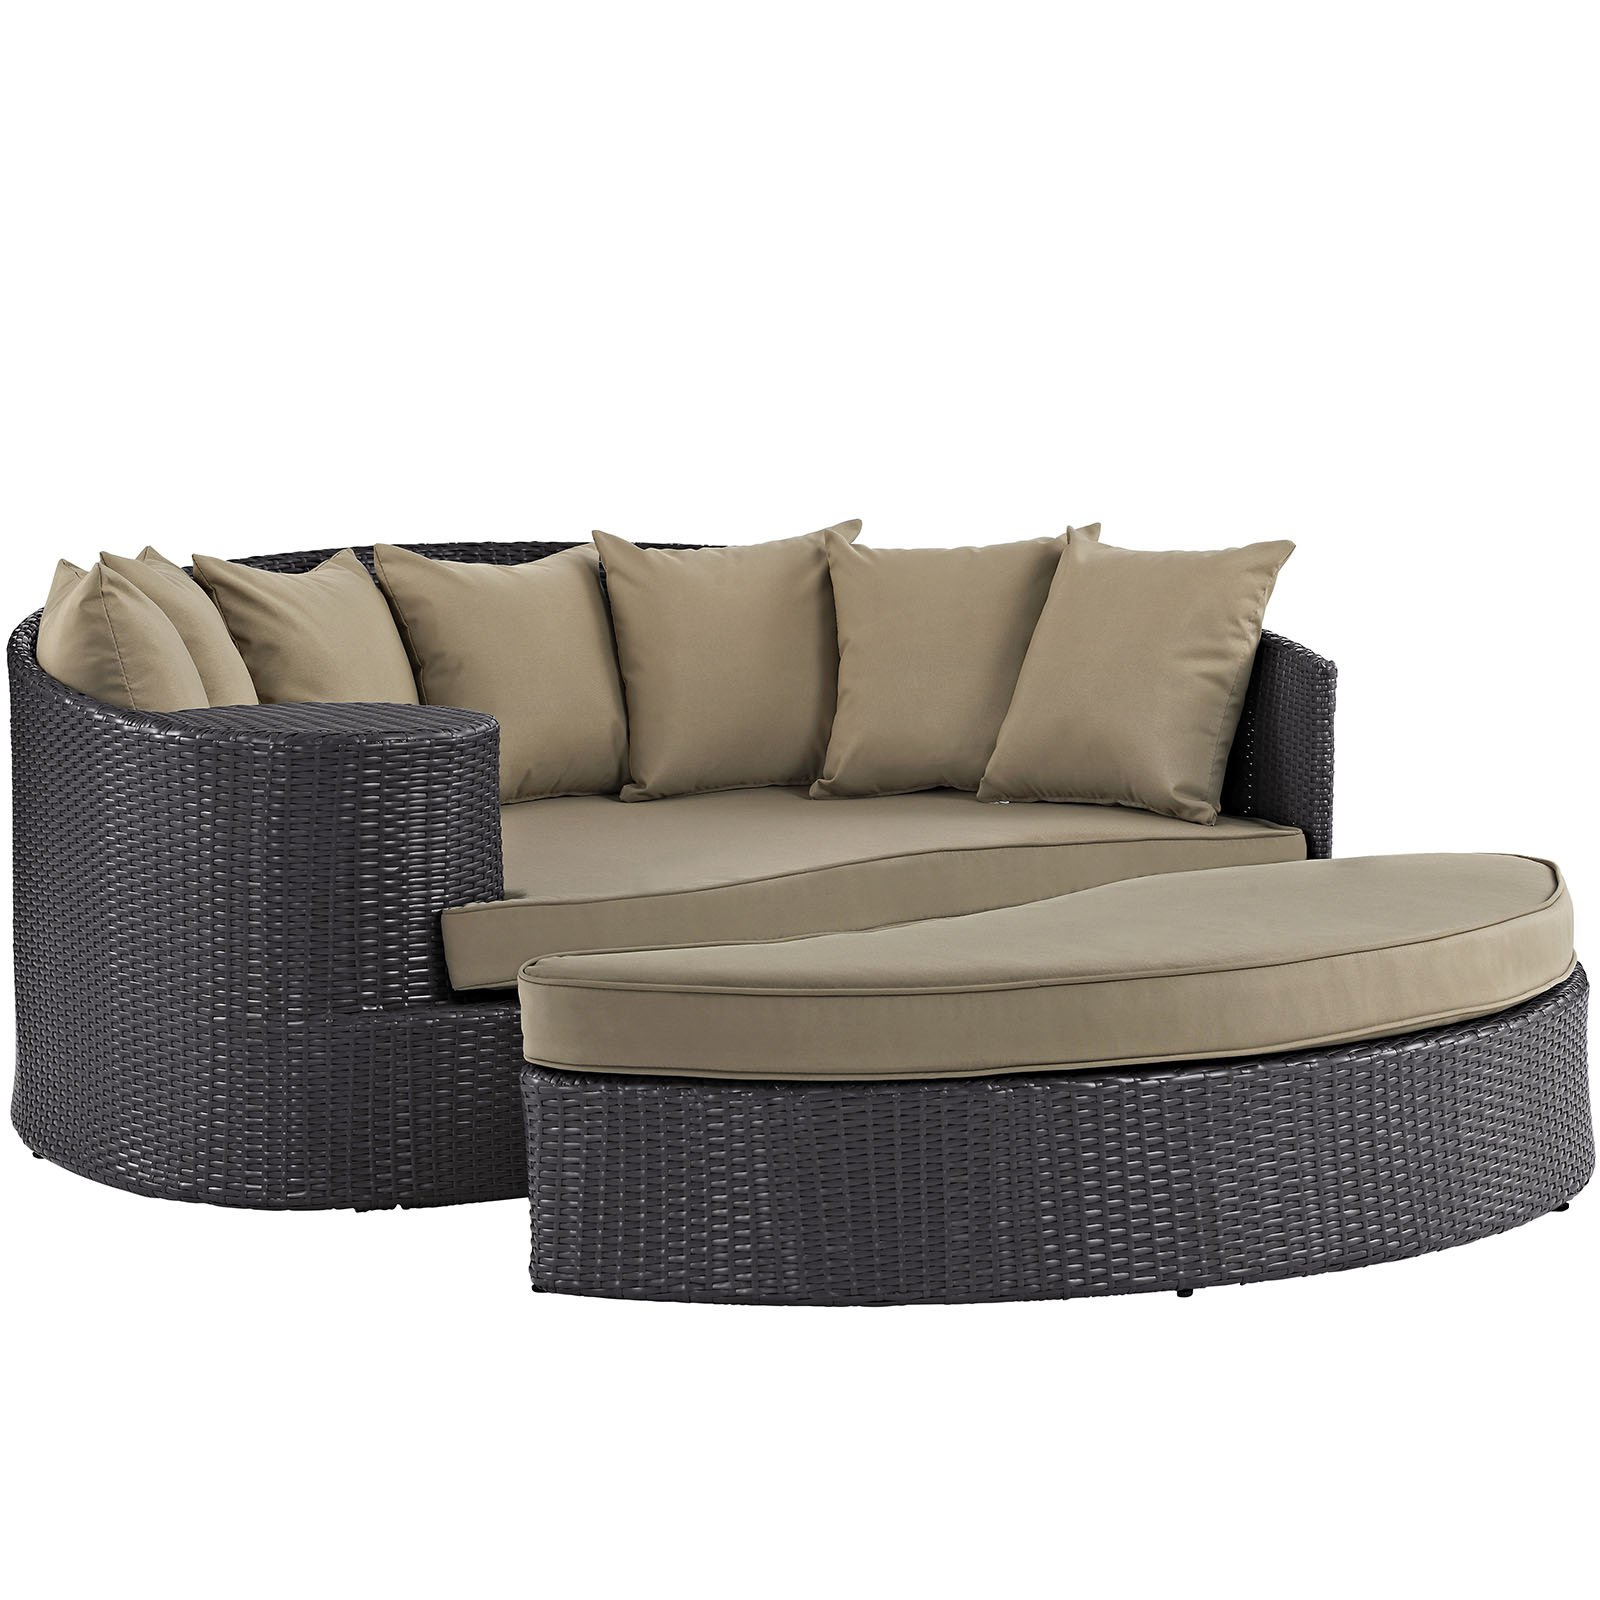 modway convene outdoor patio daybed multiple colors